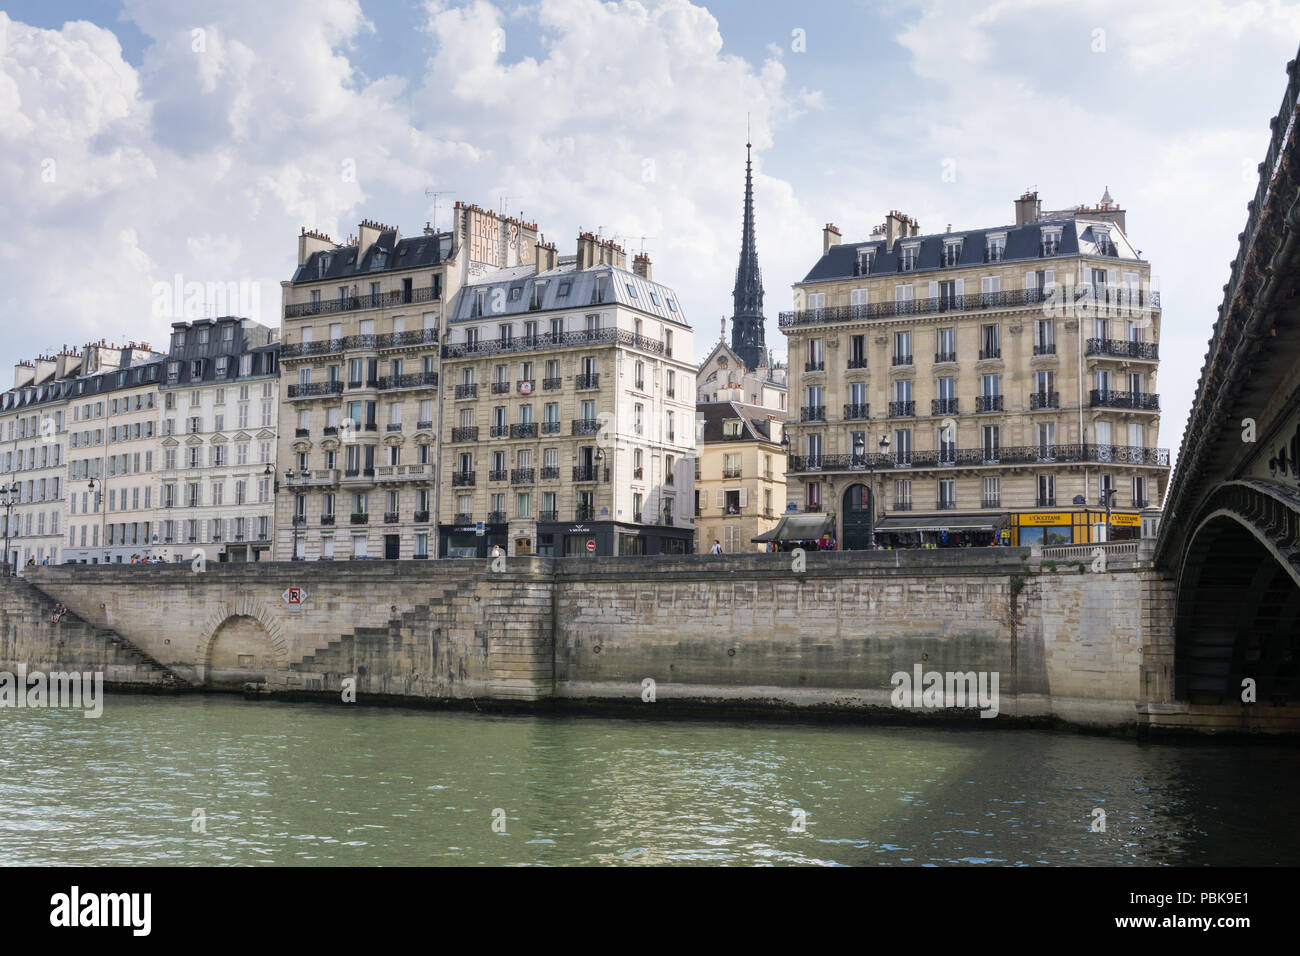 View from the Parc des Rives de Seine, next to the Pont d'Arcole bridge towards the Quai aux Fleurs on the left bank, Paris, France. - Stock Image